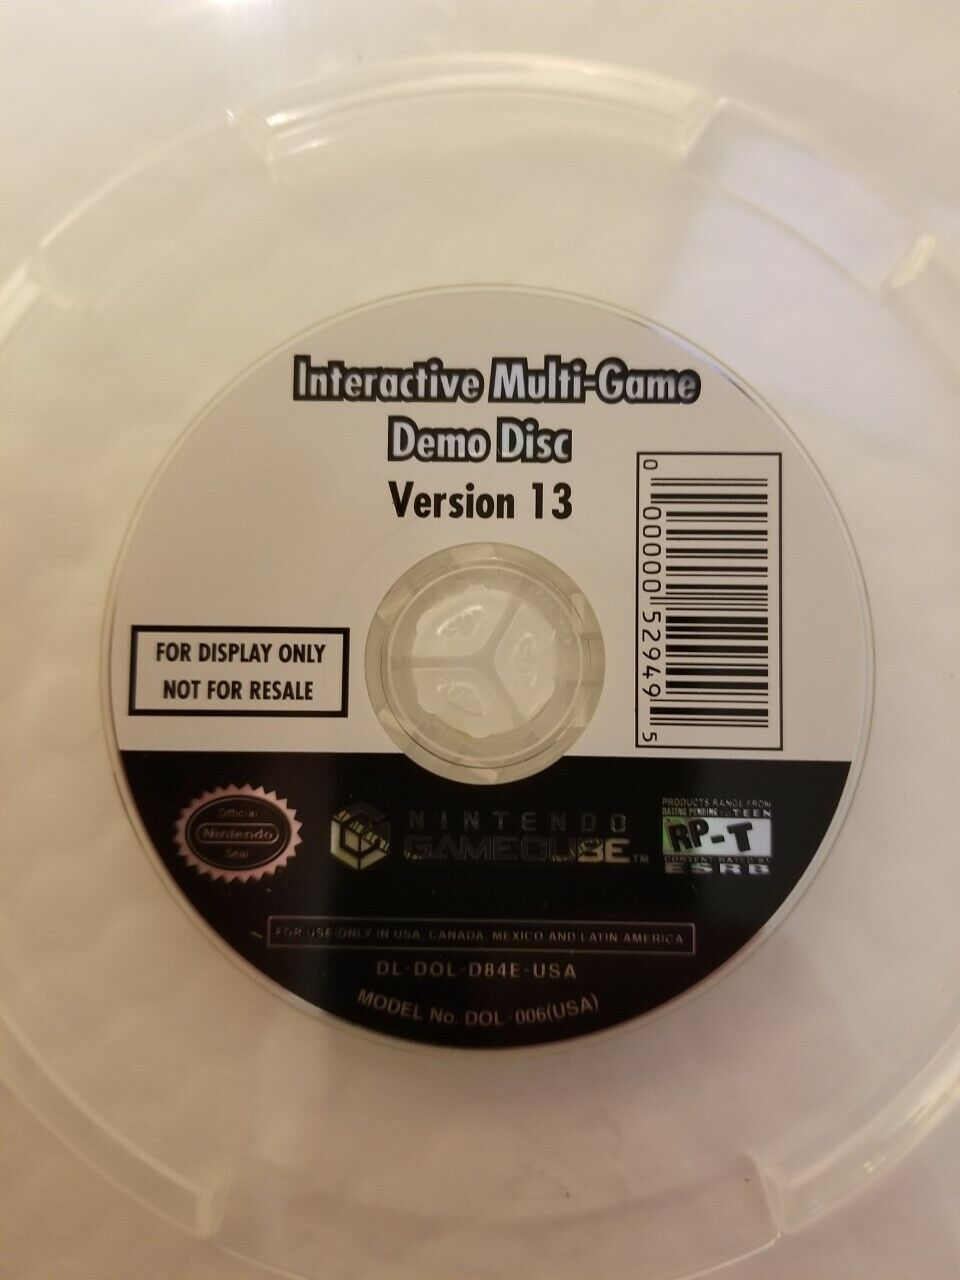 Nintendo GameCube INTERACTIVE MULTI-GAME DEMO DISC Version 13 DISC ONLY